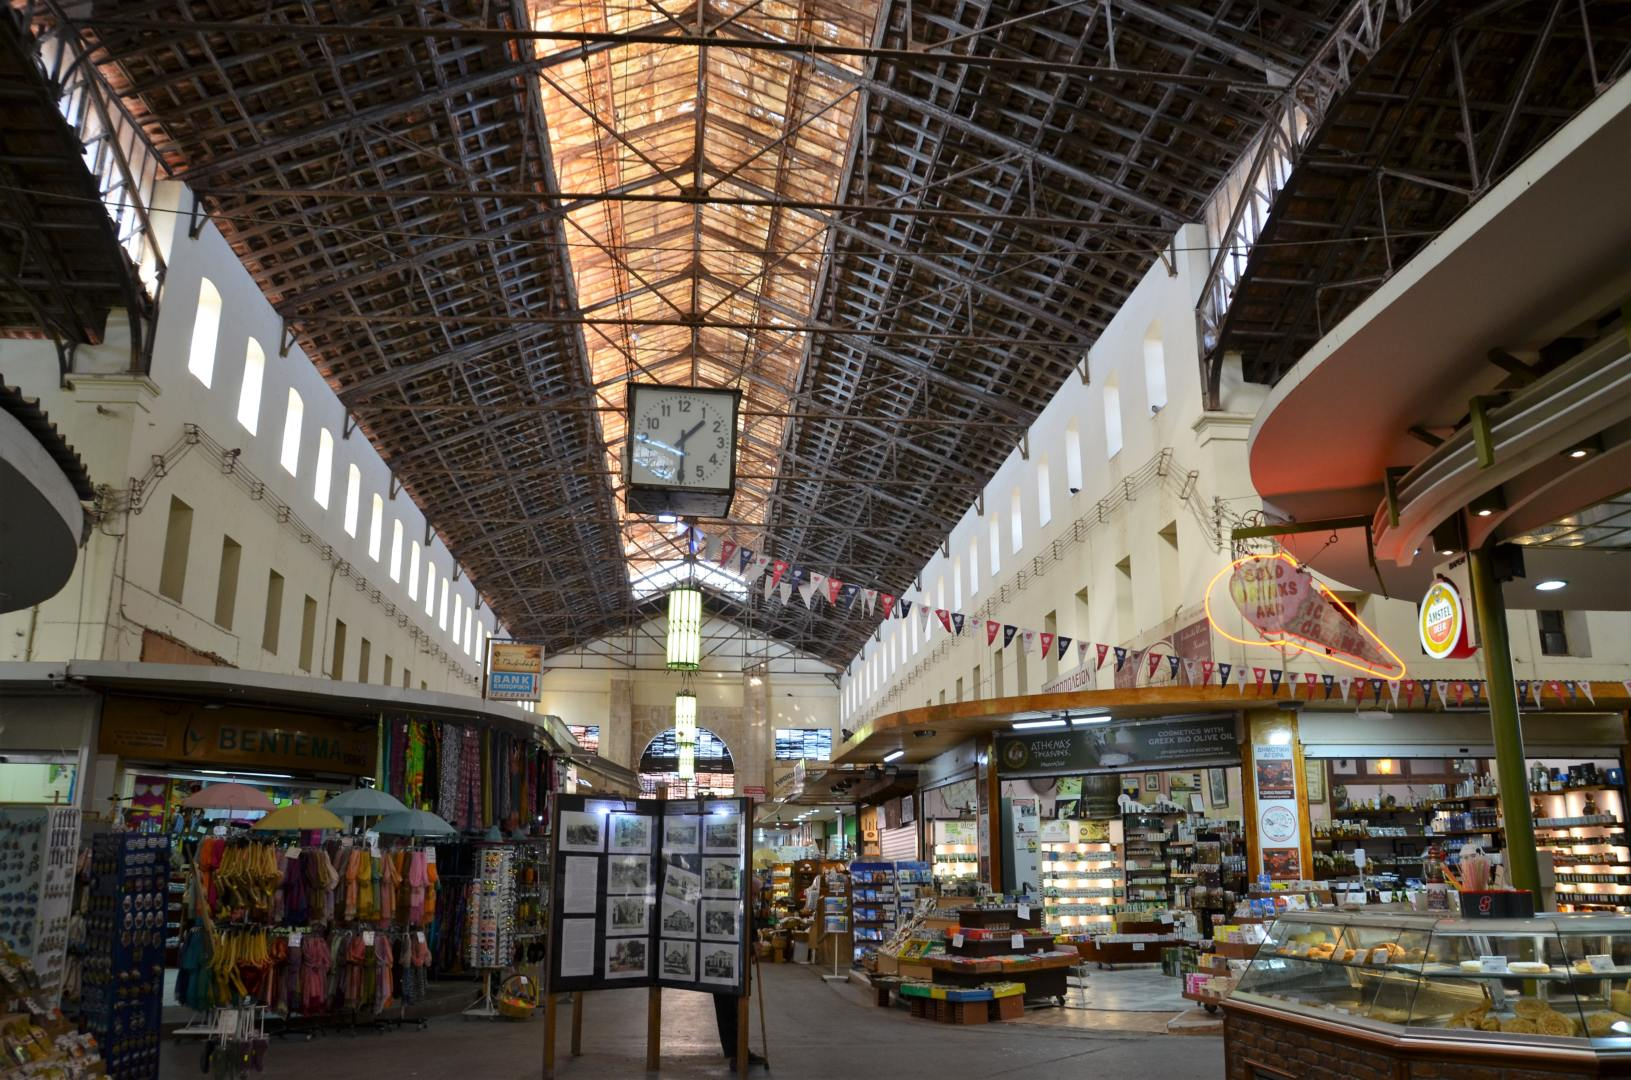 Chania Municipal Market